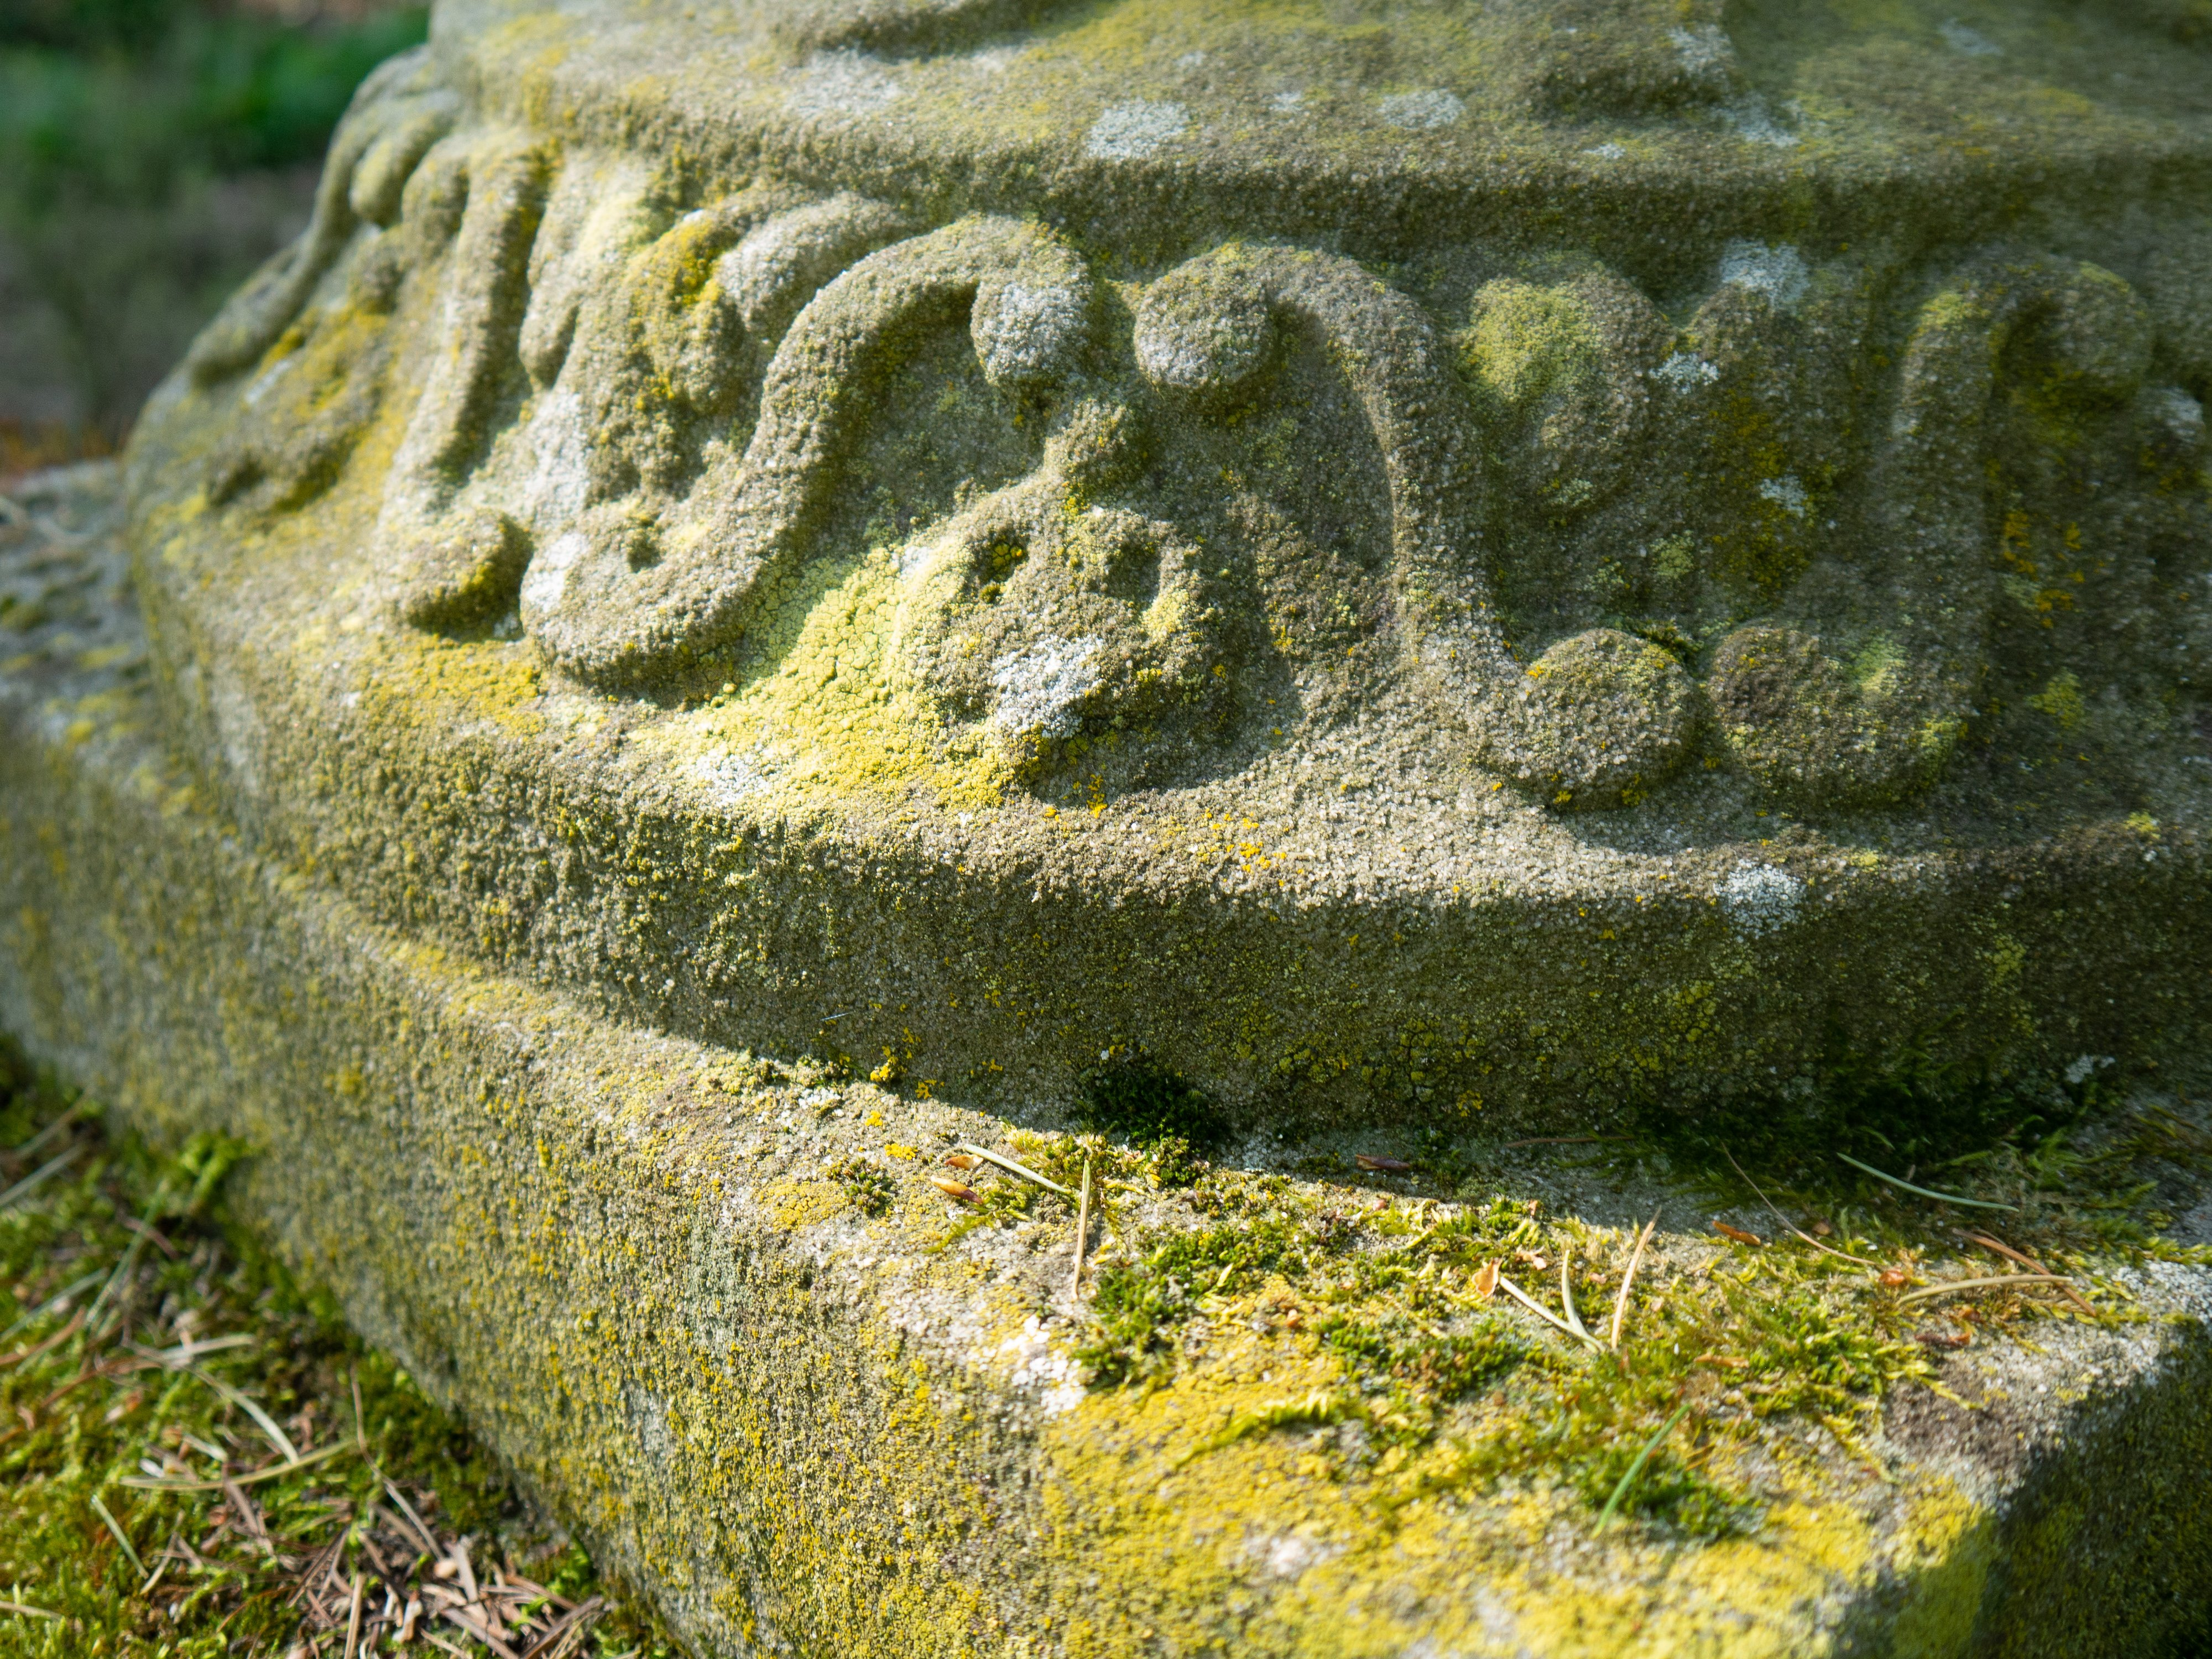 Close up of weathered old cast stone garden ornament with moss and lichen